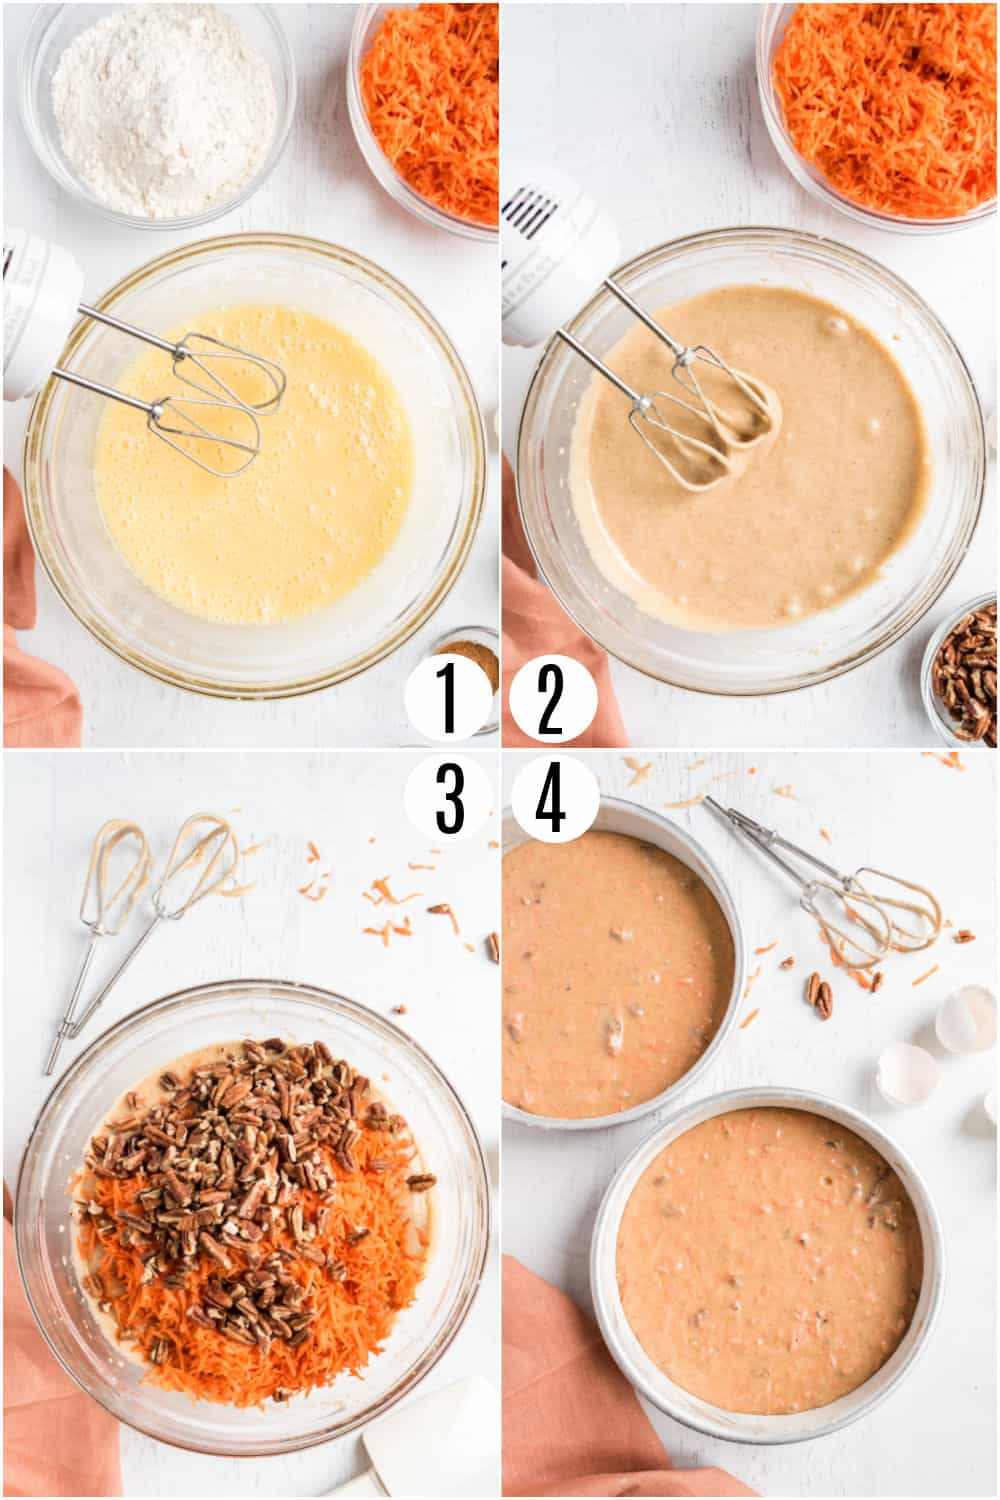 Step by step photos showing how to make carrot cake.